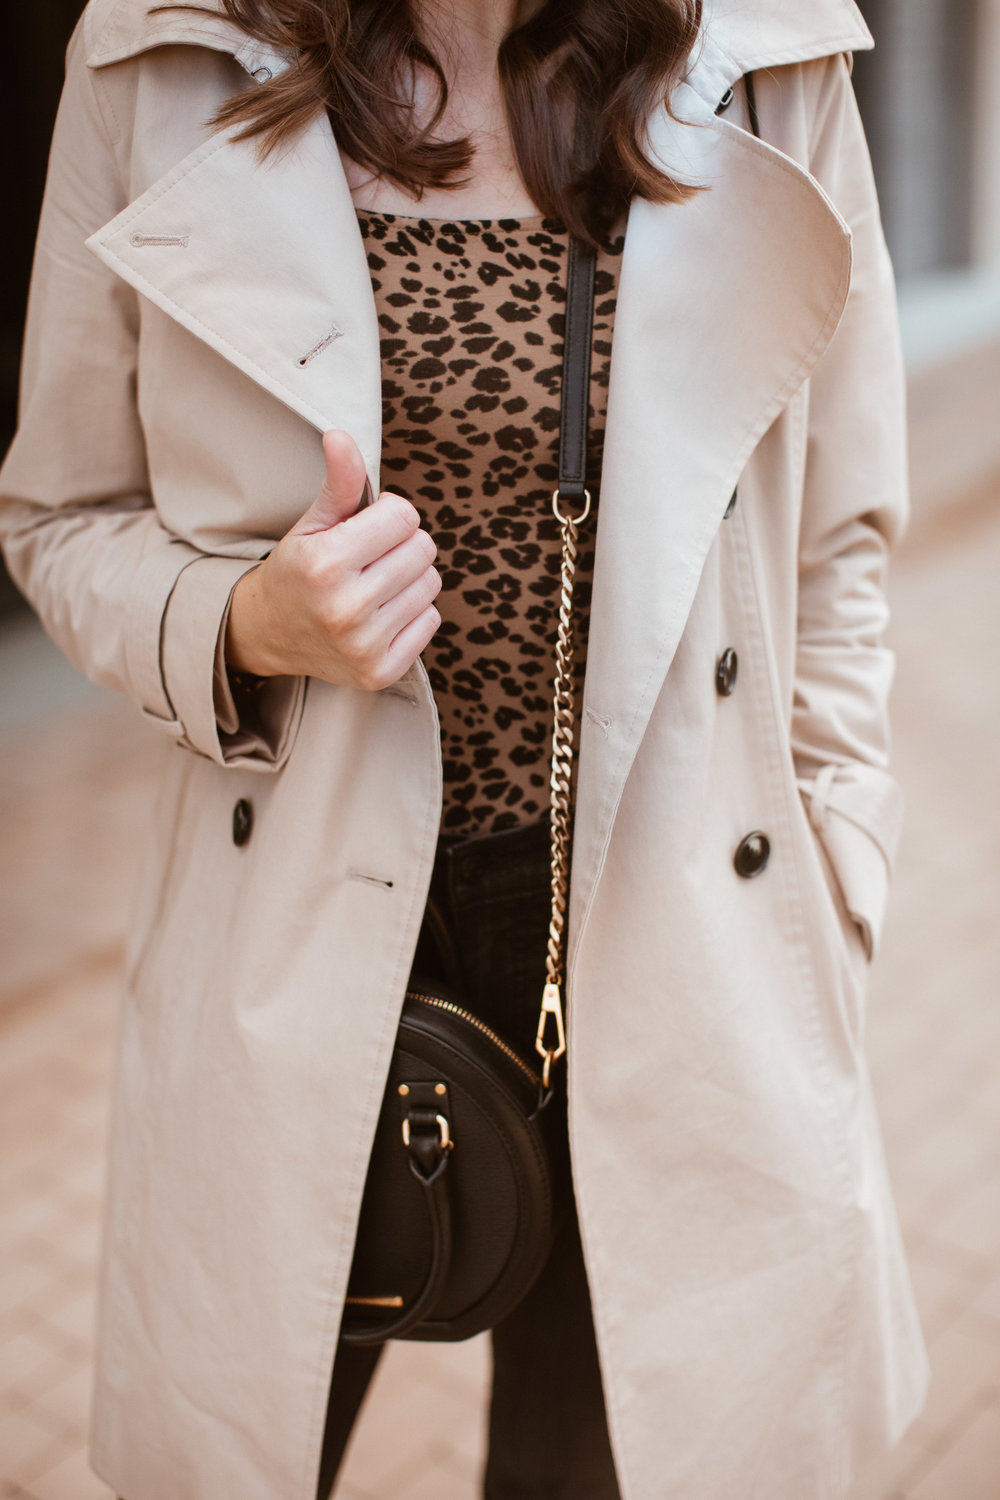 Leopard Bodysuit and Trench Coat | www.girlmeetsgold.com